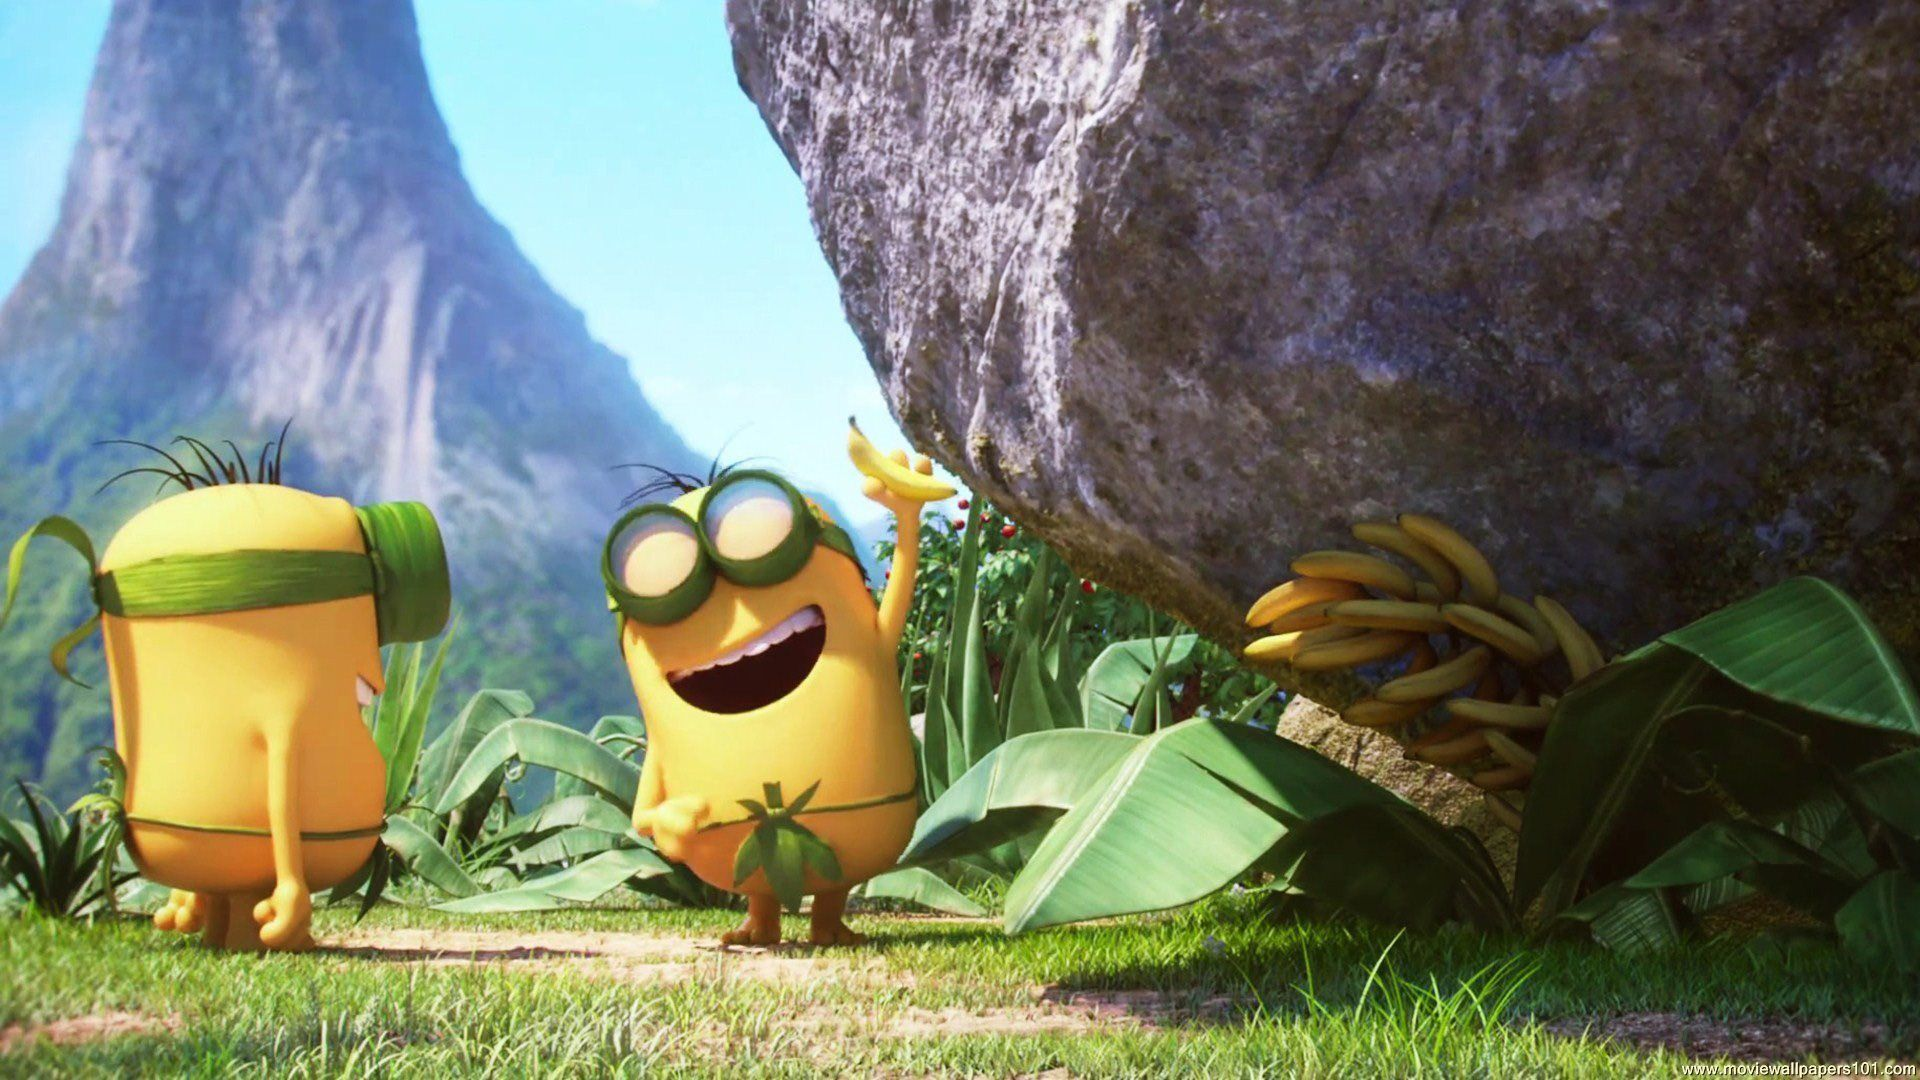 Explore Minions Quotes, Minions Minions And More!